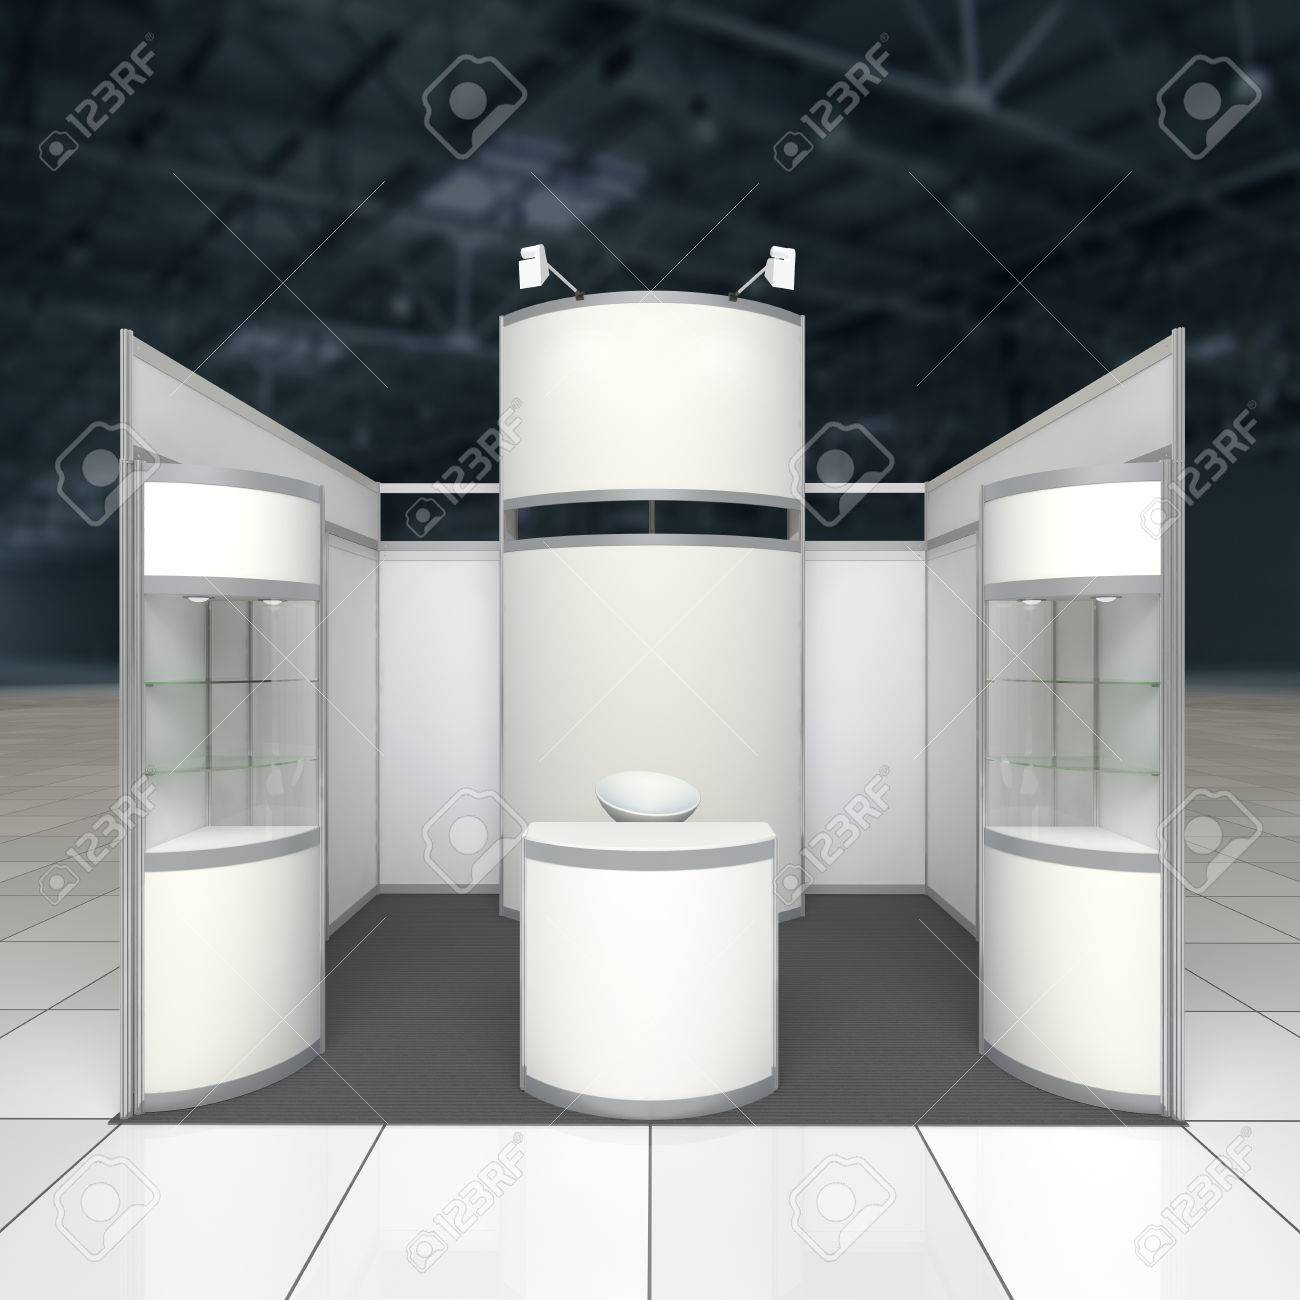 Simple Exhibition Stand Design : Simple exhibition stand with blank radial display reception